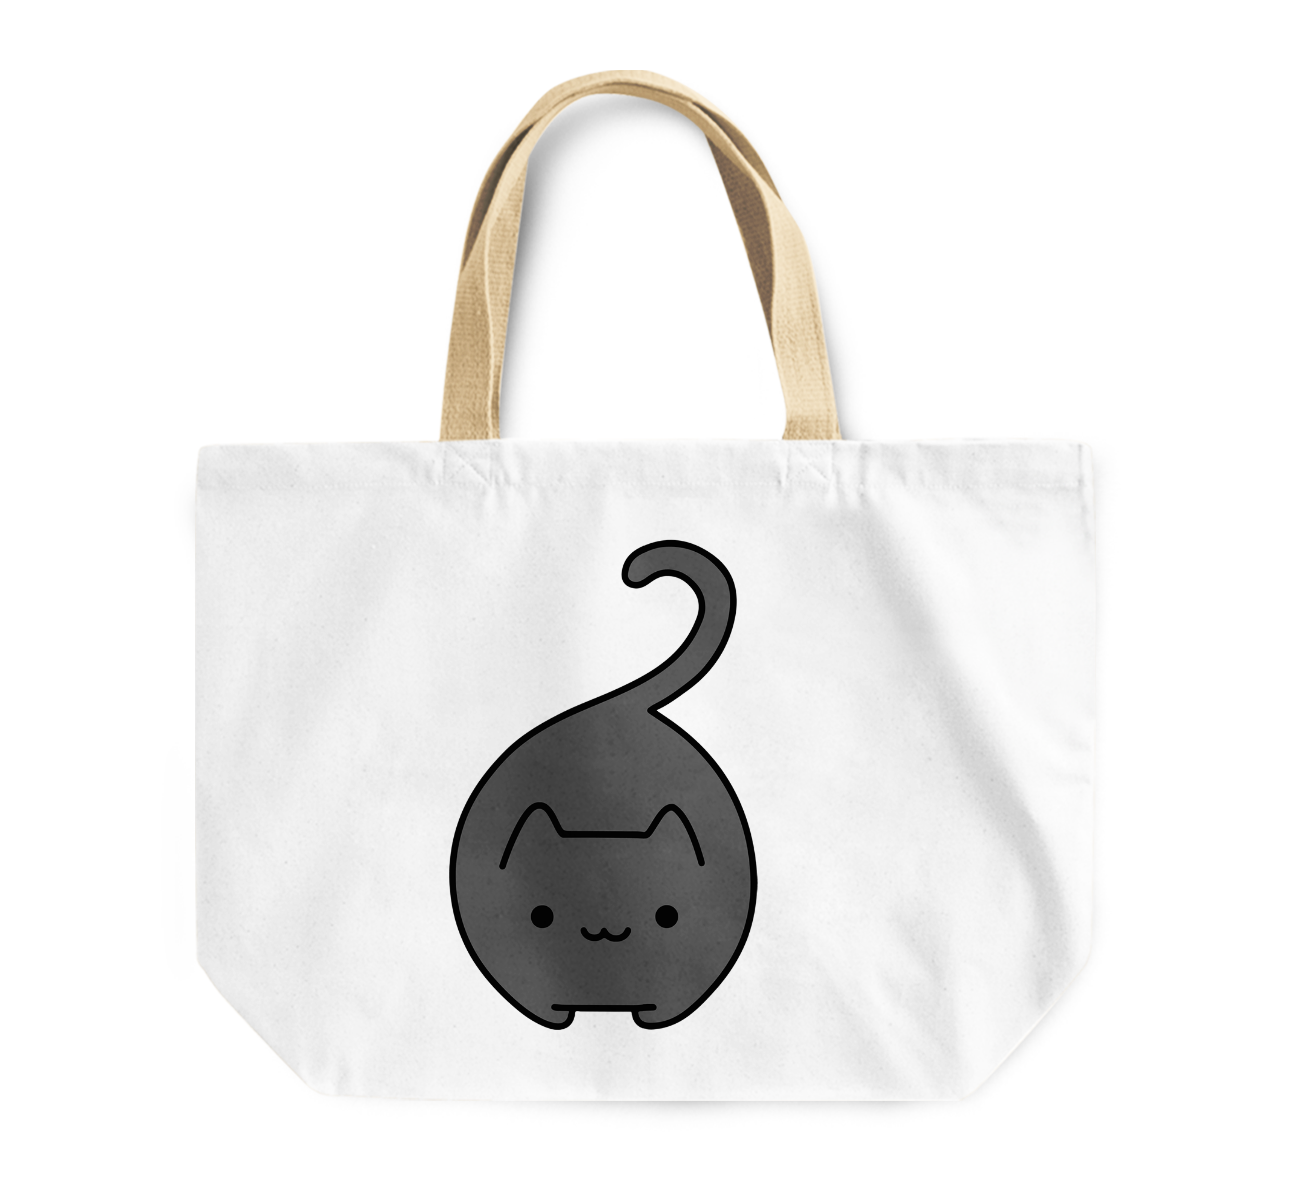 Tote Bag Fatty Kitty Cat Pet Reusable Shopping Bag By Loud Universe